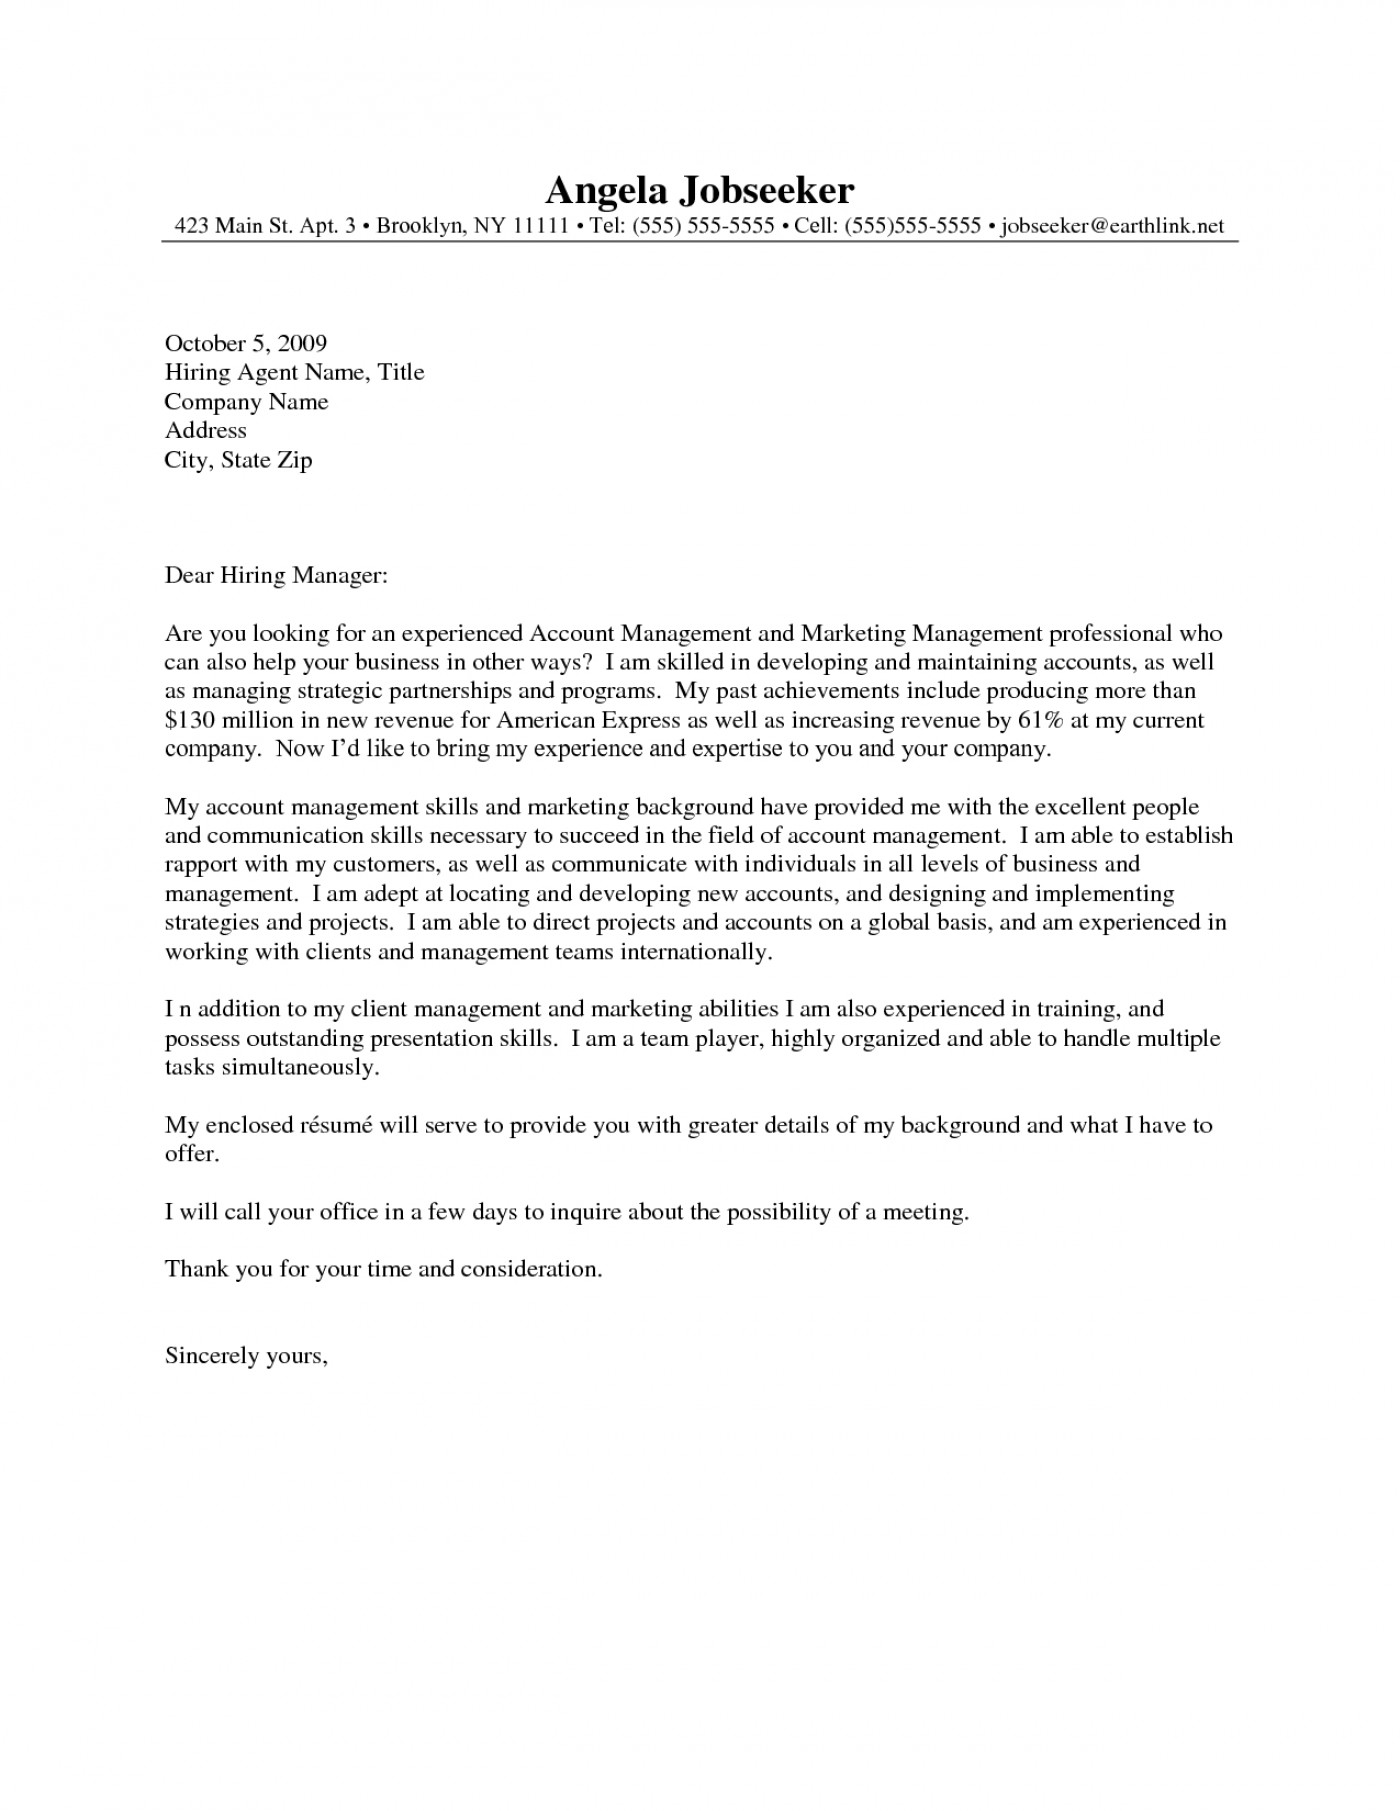 022 Cover Letter Research Paper Cv Meaning College Scholarship